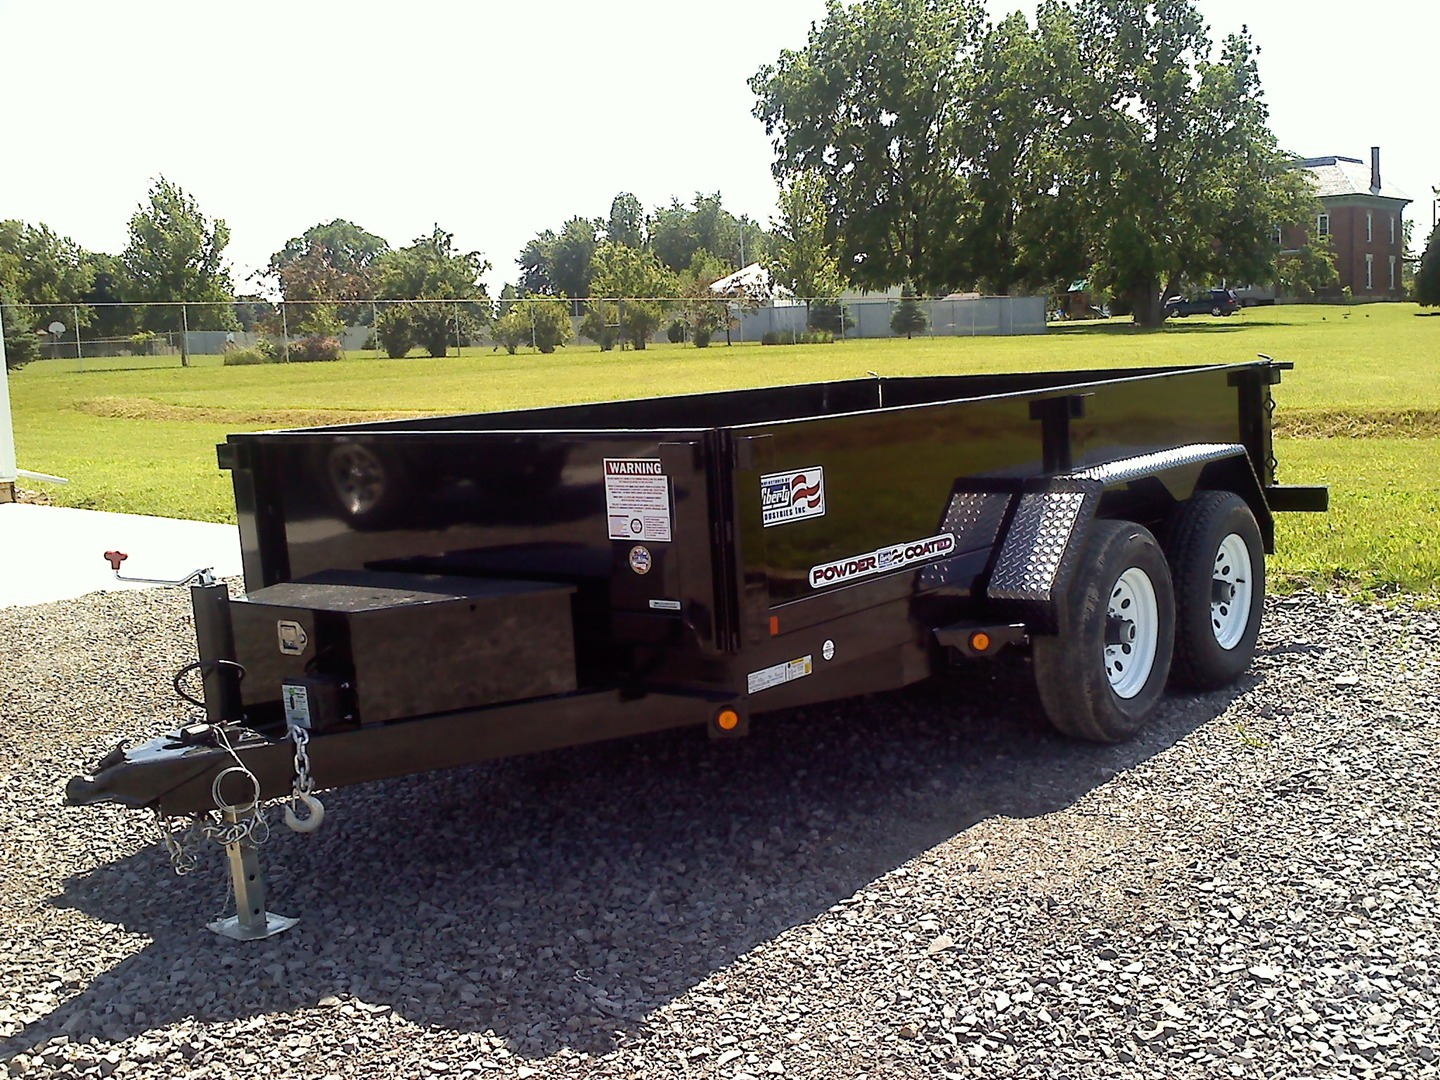 Landscape Utility Trailers 16 Trailer Wiring Harness Acid Washed To Achieve The Best Possible Surface Preparation Prior Coating Include Industrial Grade Sealed Harnesses Which Eliminate